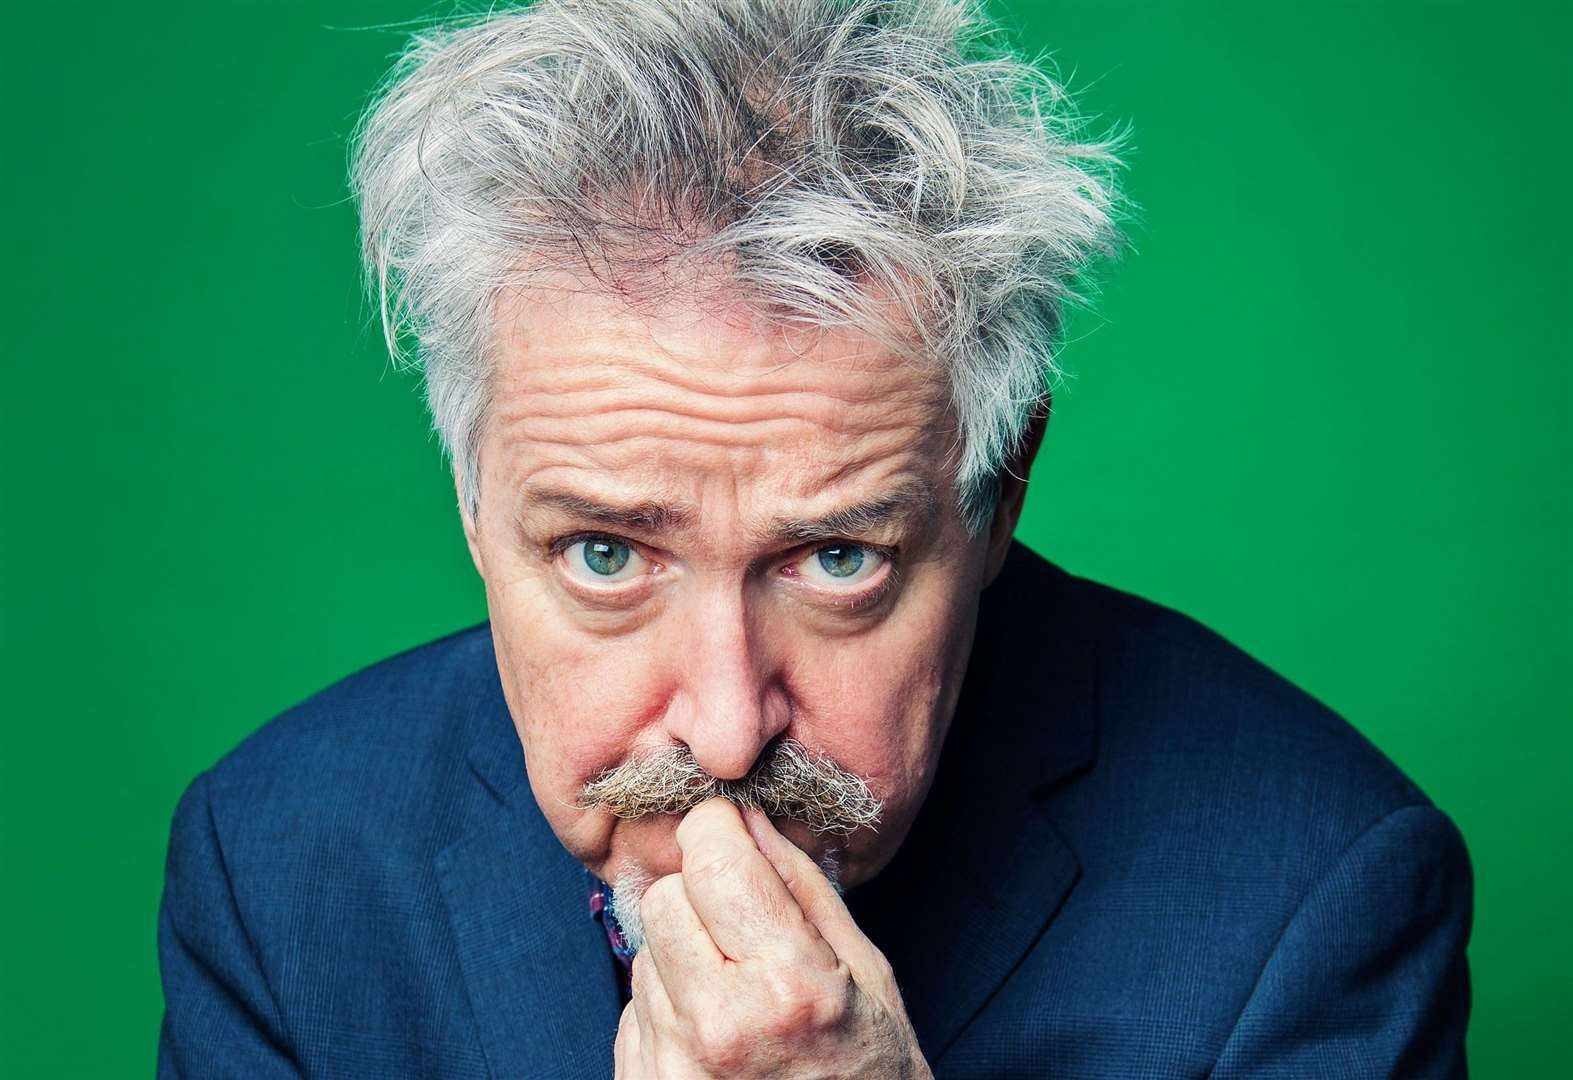 Actor and comedian Griff Rhys Jones' All Over The Place in Diss